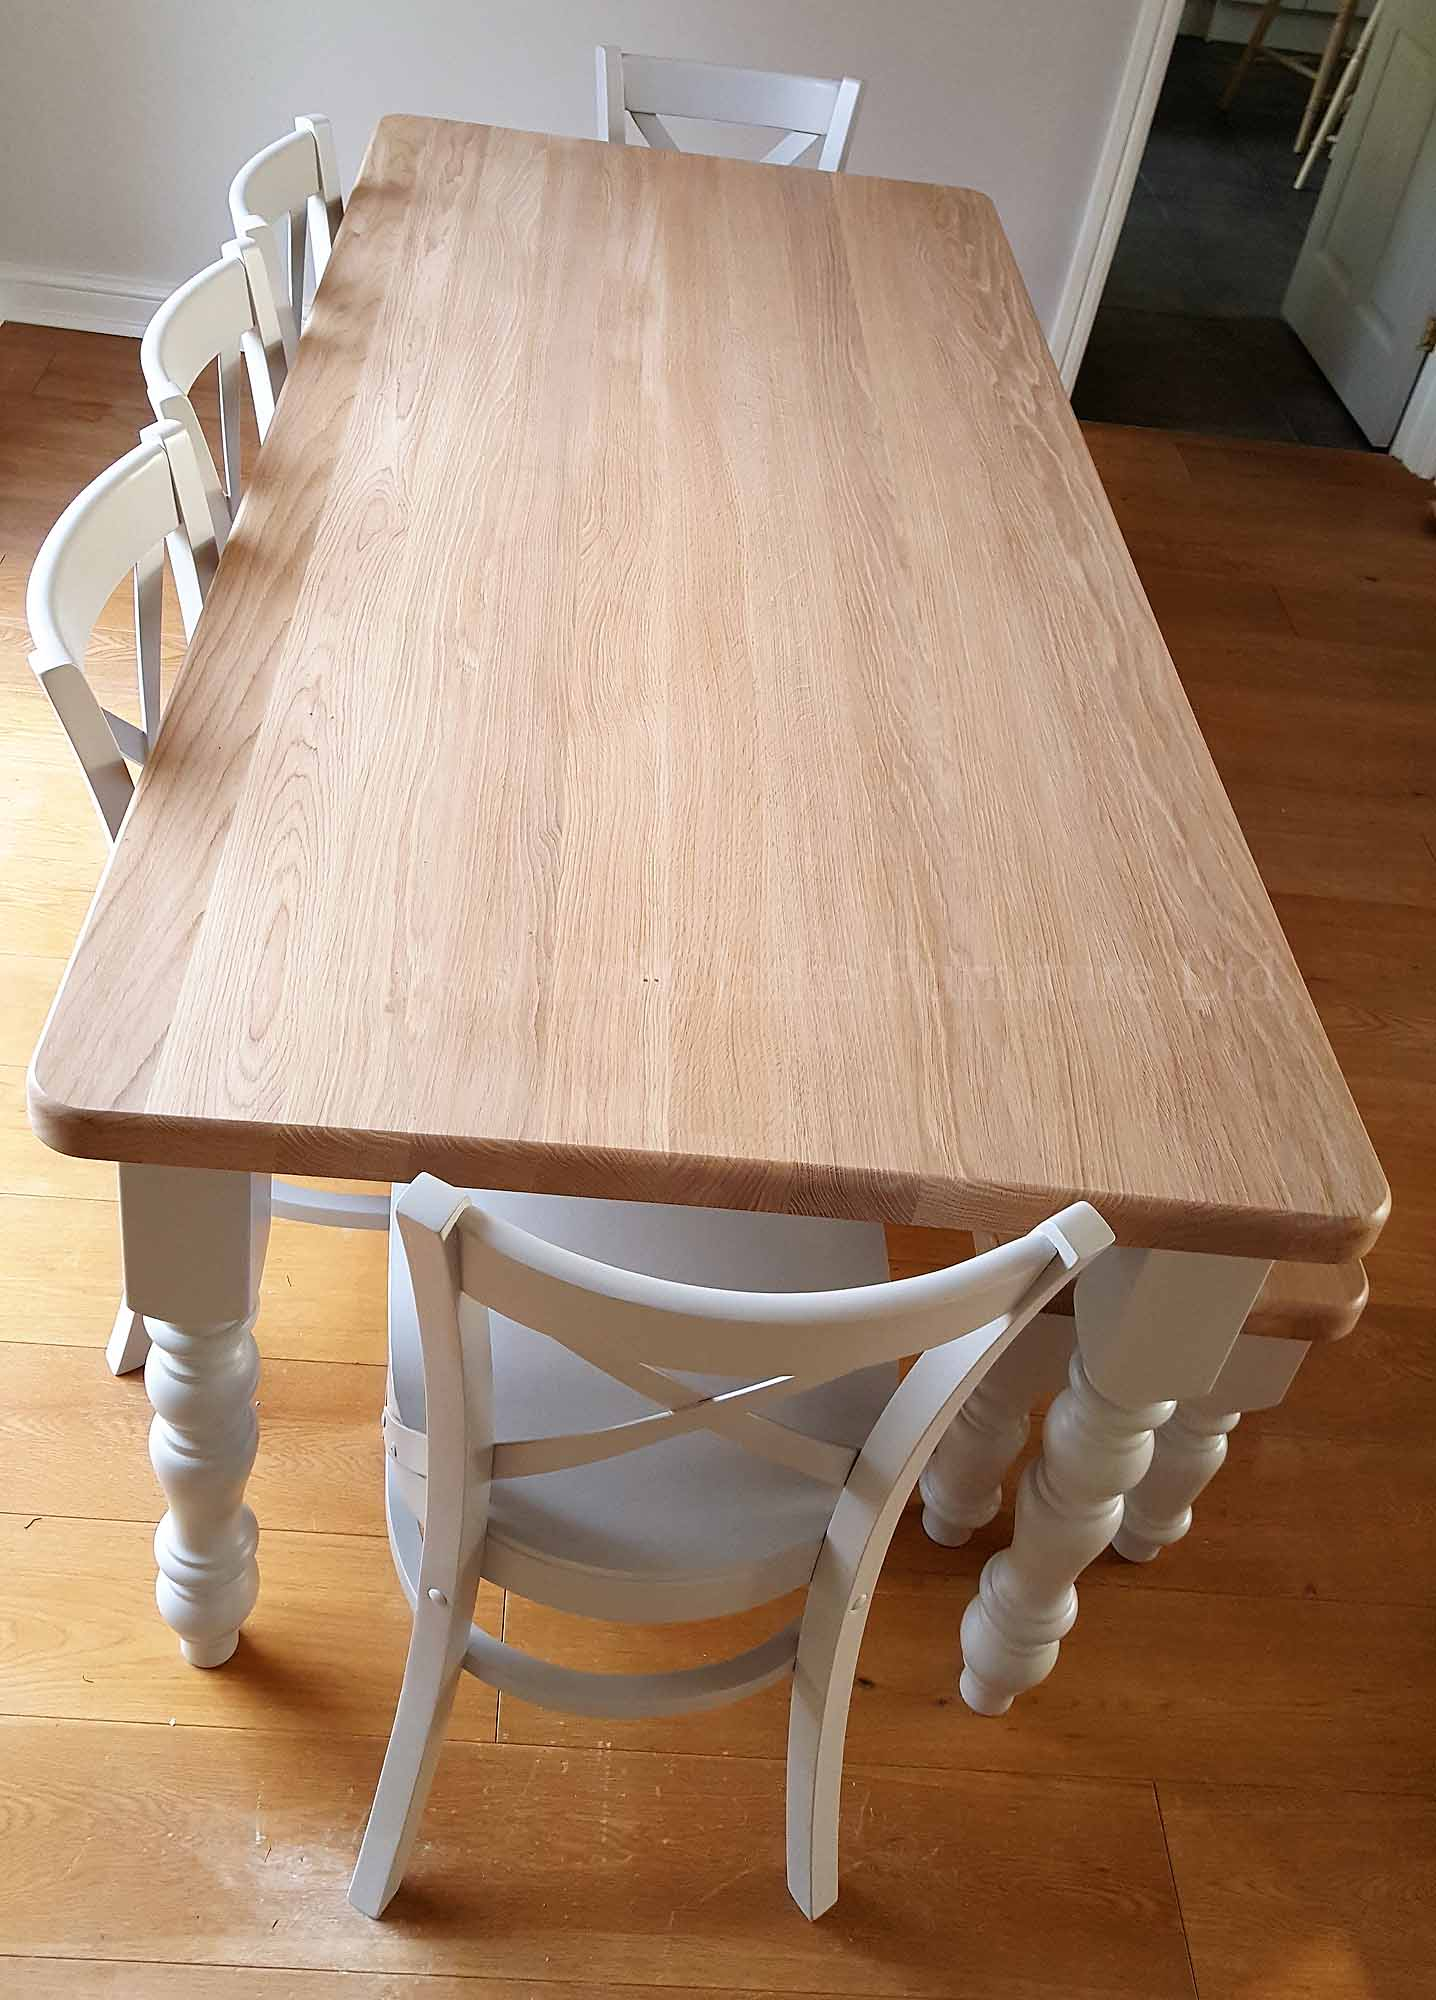 Edmunds farmhouse style 6' x 3' table with crossback chairs and bench